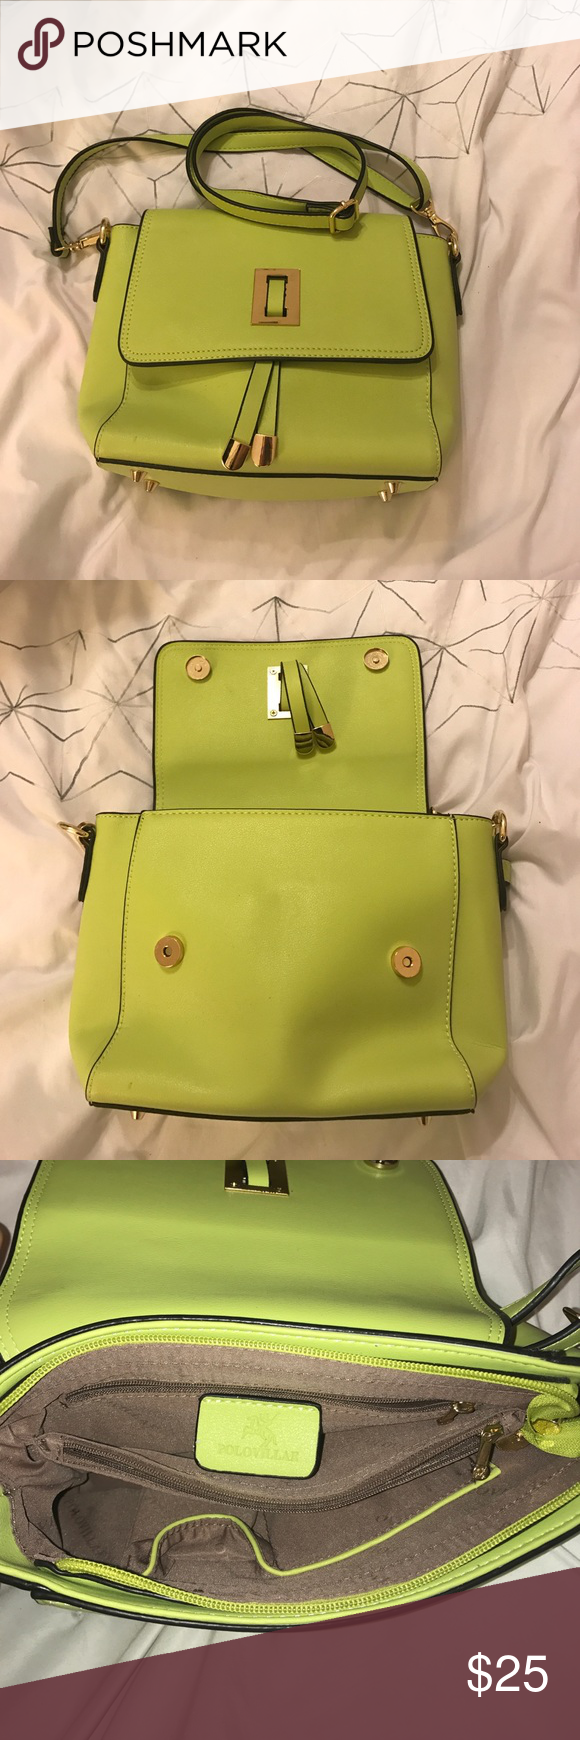 Polo Villae crossbody Lime colored cross body bag that is perfect for  spring and summer. Polo Villae Bags Crossbody Bags 8c5300357a